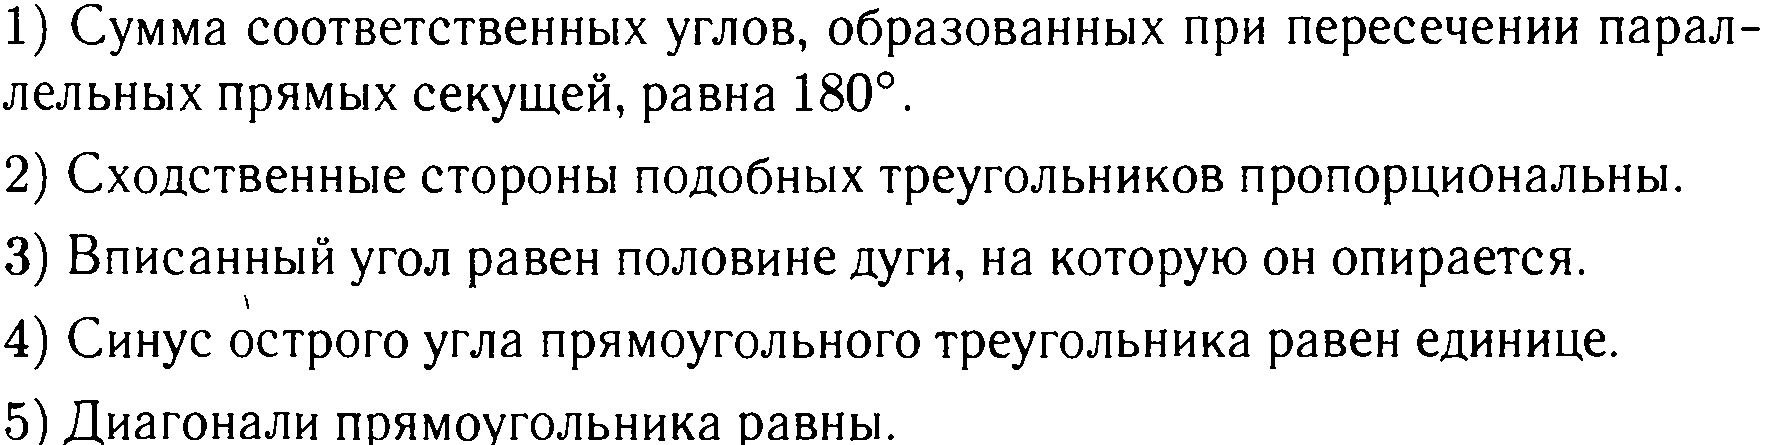 http://doc4web.ru/uploads/files/77/77306/hello_html_m595285e7.png